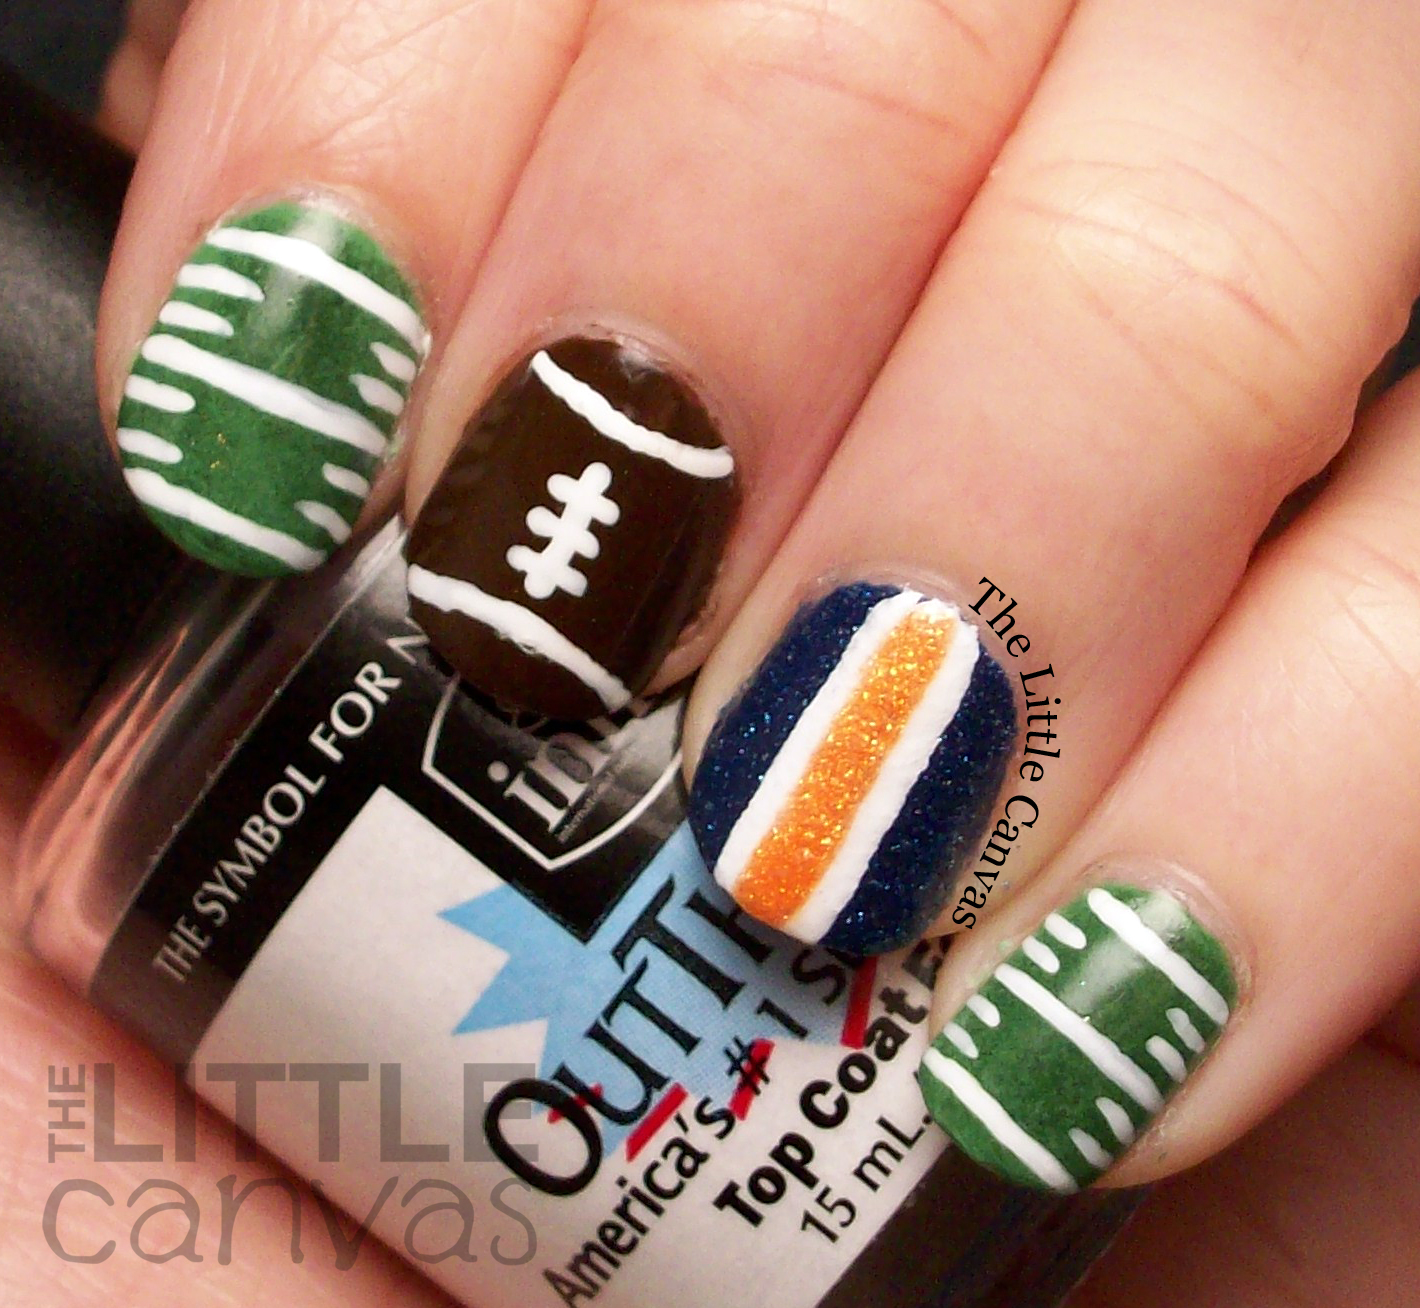 A Zoya Superbowl Manicure - Go Broncos! - The Little Canvas